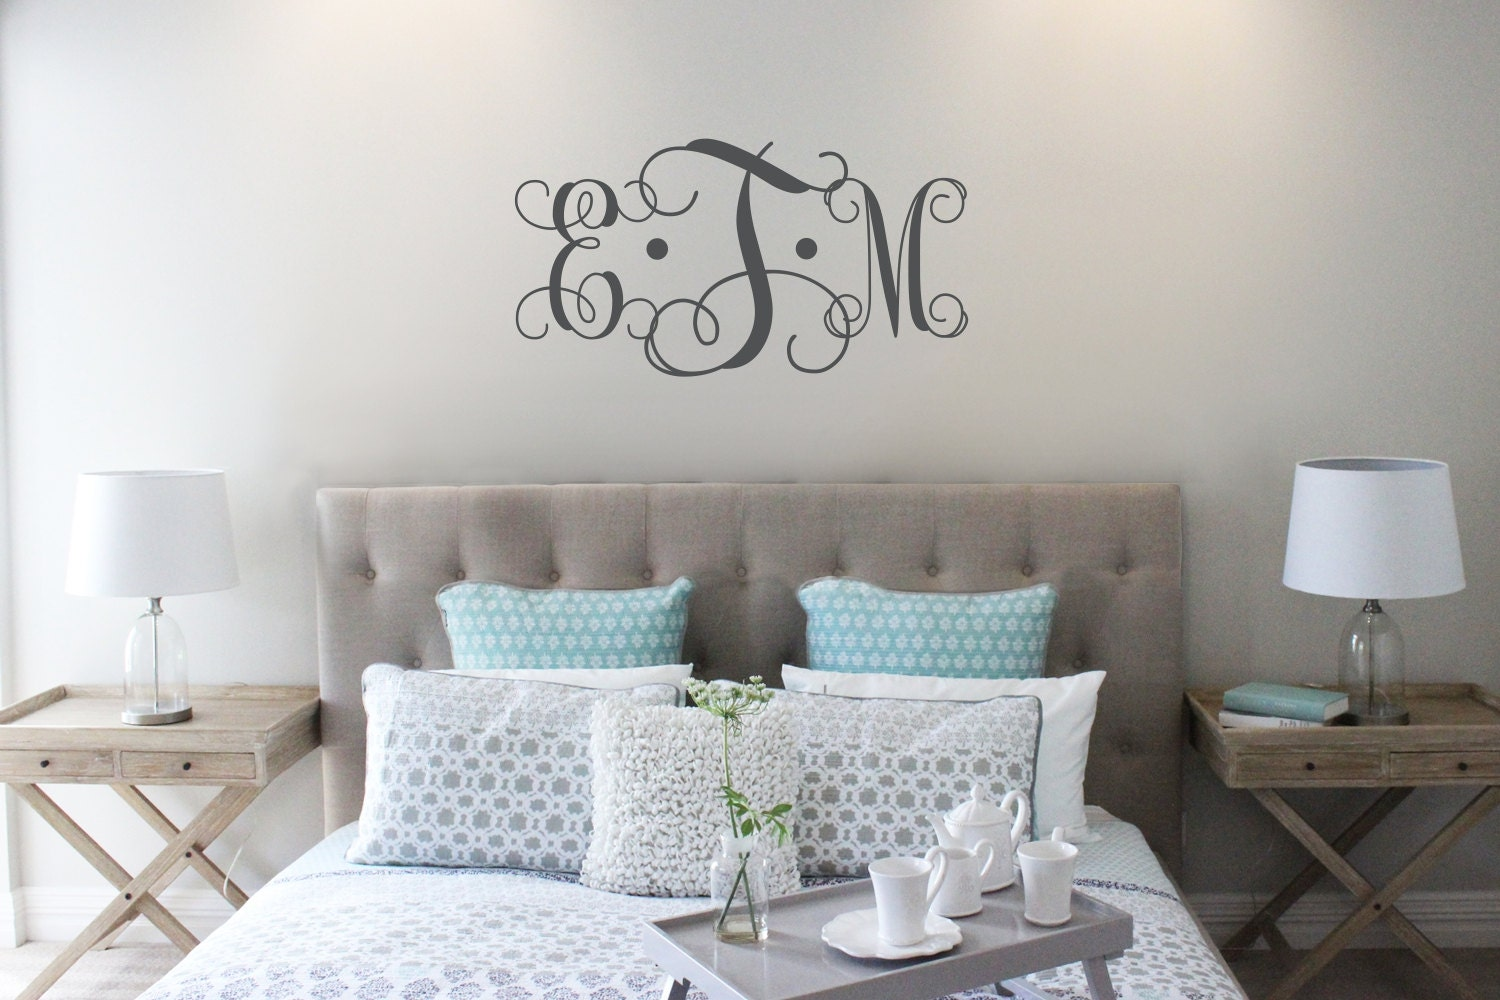 vine monogram decal king size bed decal master bedroom wall vine monogram decal king size bed decal master bedroom wall decal wedding monogram wedding gift